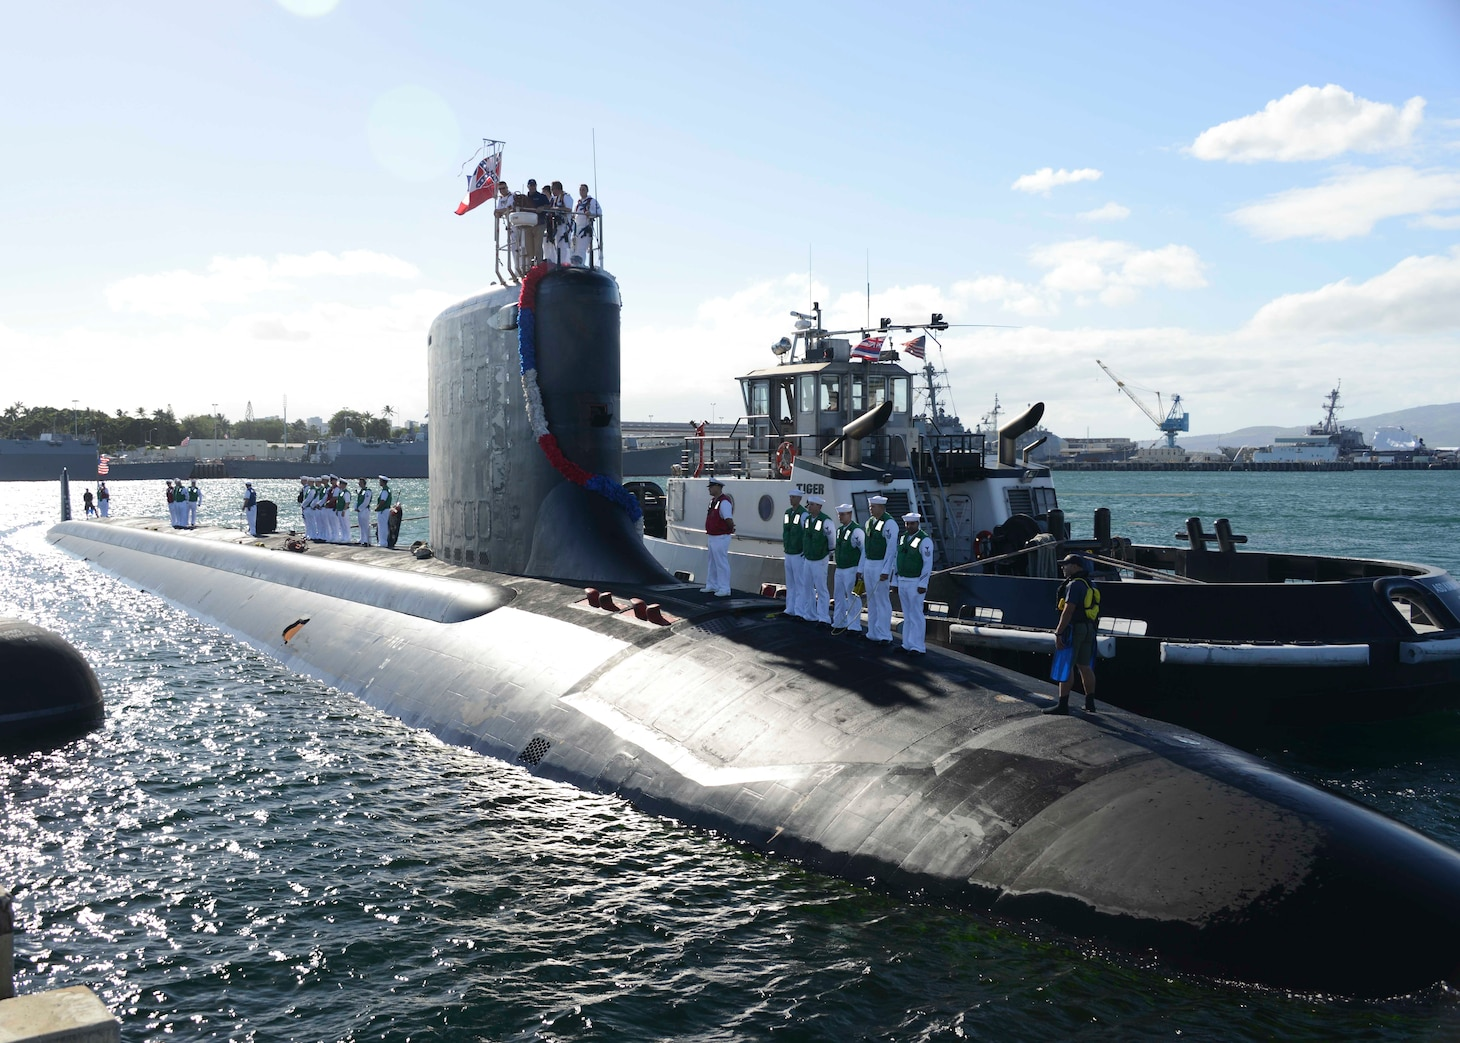 PEARL HARBOR (Nov. 25, 2014) The Virginia-class attack submarine USS Mississippi (SSN 782) arrives at Joint Base Pearl Harbor-Hickam for a change of homeport from Commander, Submarine Squadron (SUBRON) 4 in Groton, Conn., to SUBRON-1. Mississippi is the 4th Virginia-class submarine to be home ported in Pearl Harbor, and one of 18 attack submarines permanently homeported at the historic base. (U.S. Navy photo by Mass Communication Specialist 1st Class Steven Khor/Released)